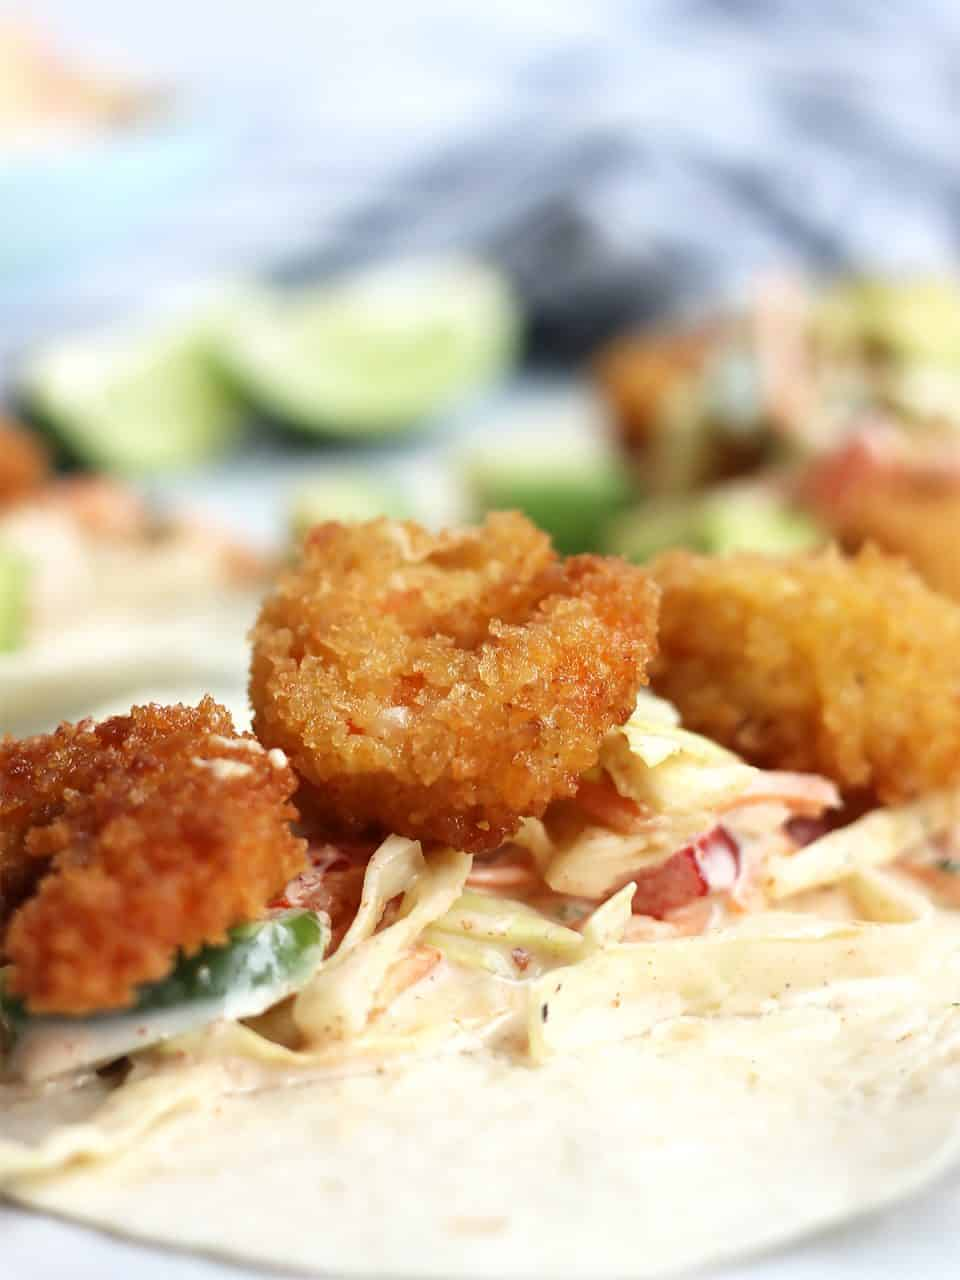 Close up of three breaded shrimp on coleslaw.